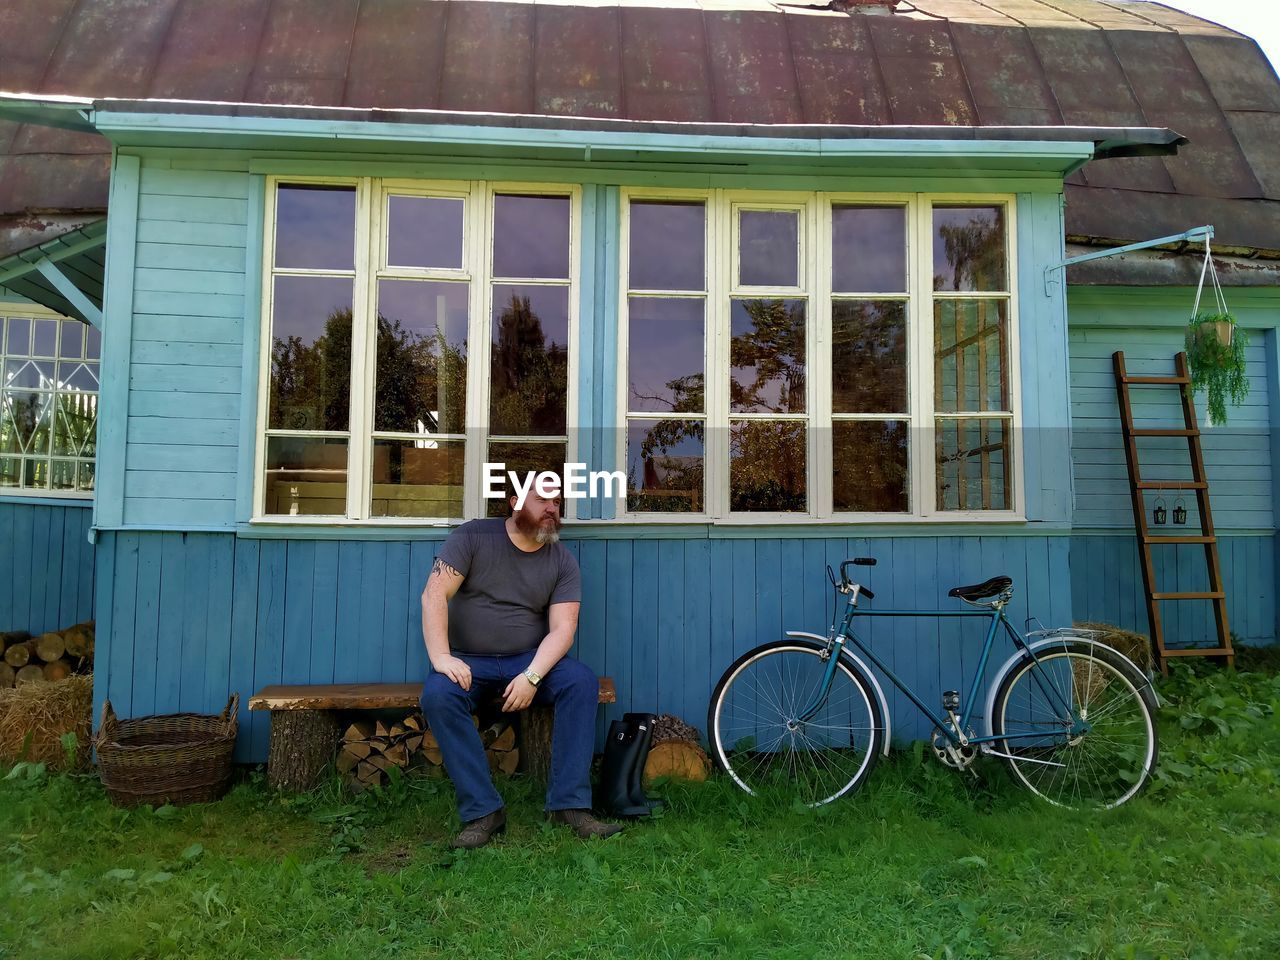 FULL LENGTH OF MAN SITTING ON BICYCLE AGAINST BUILDING